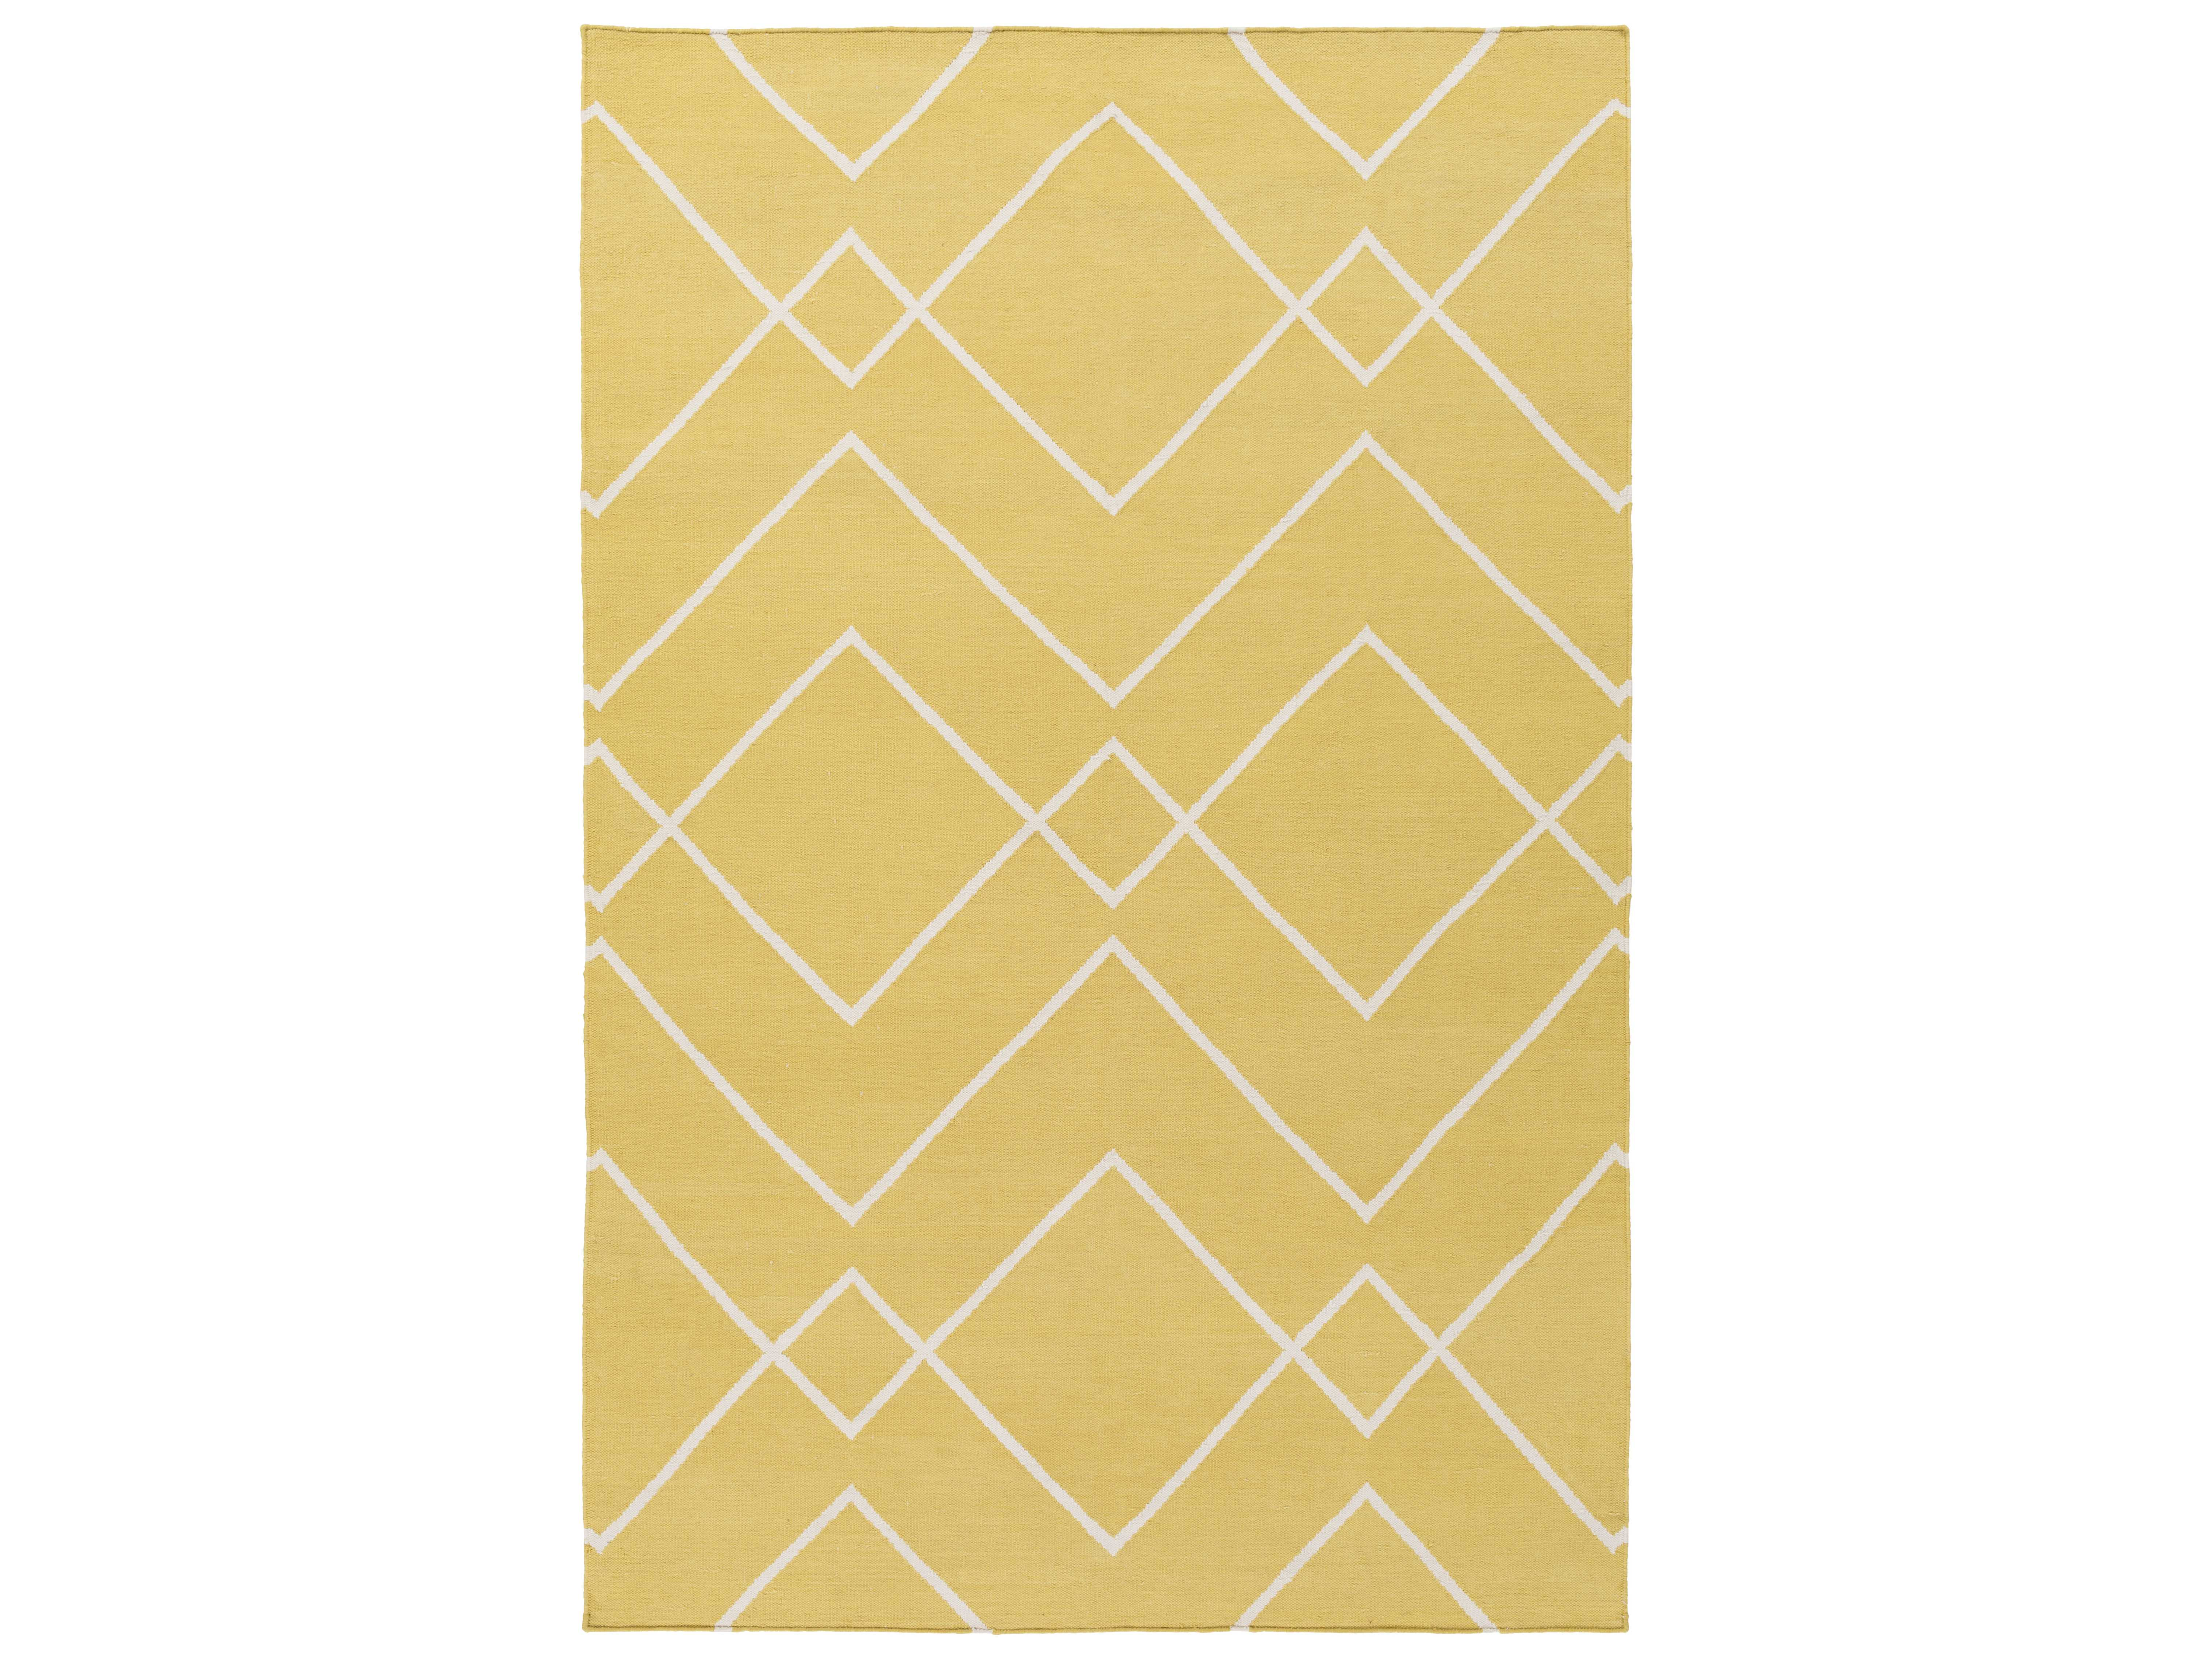 garrard handwoven yellow area rug